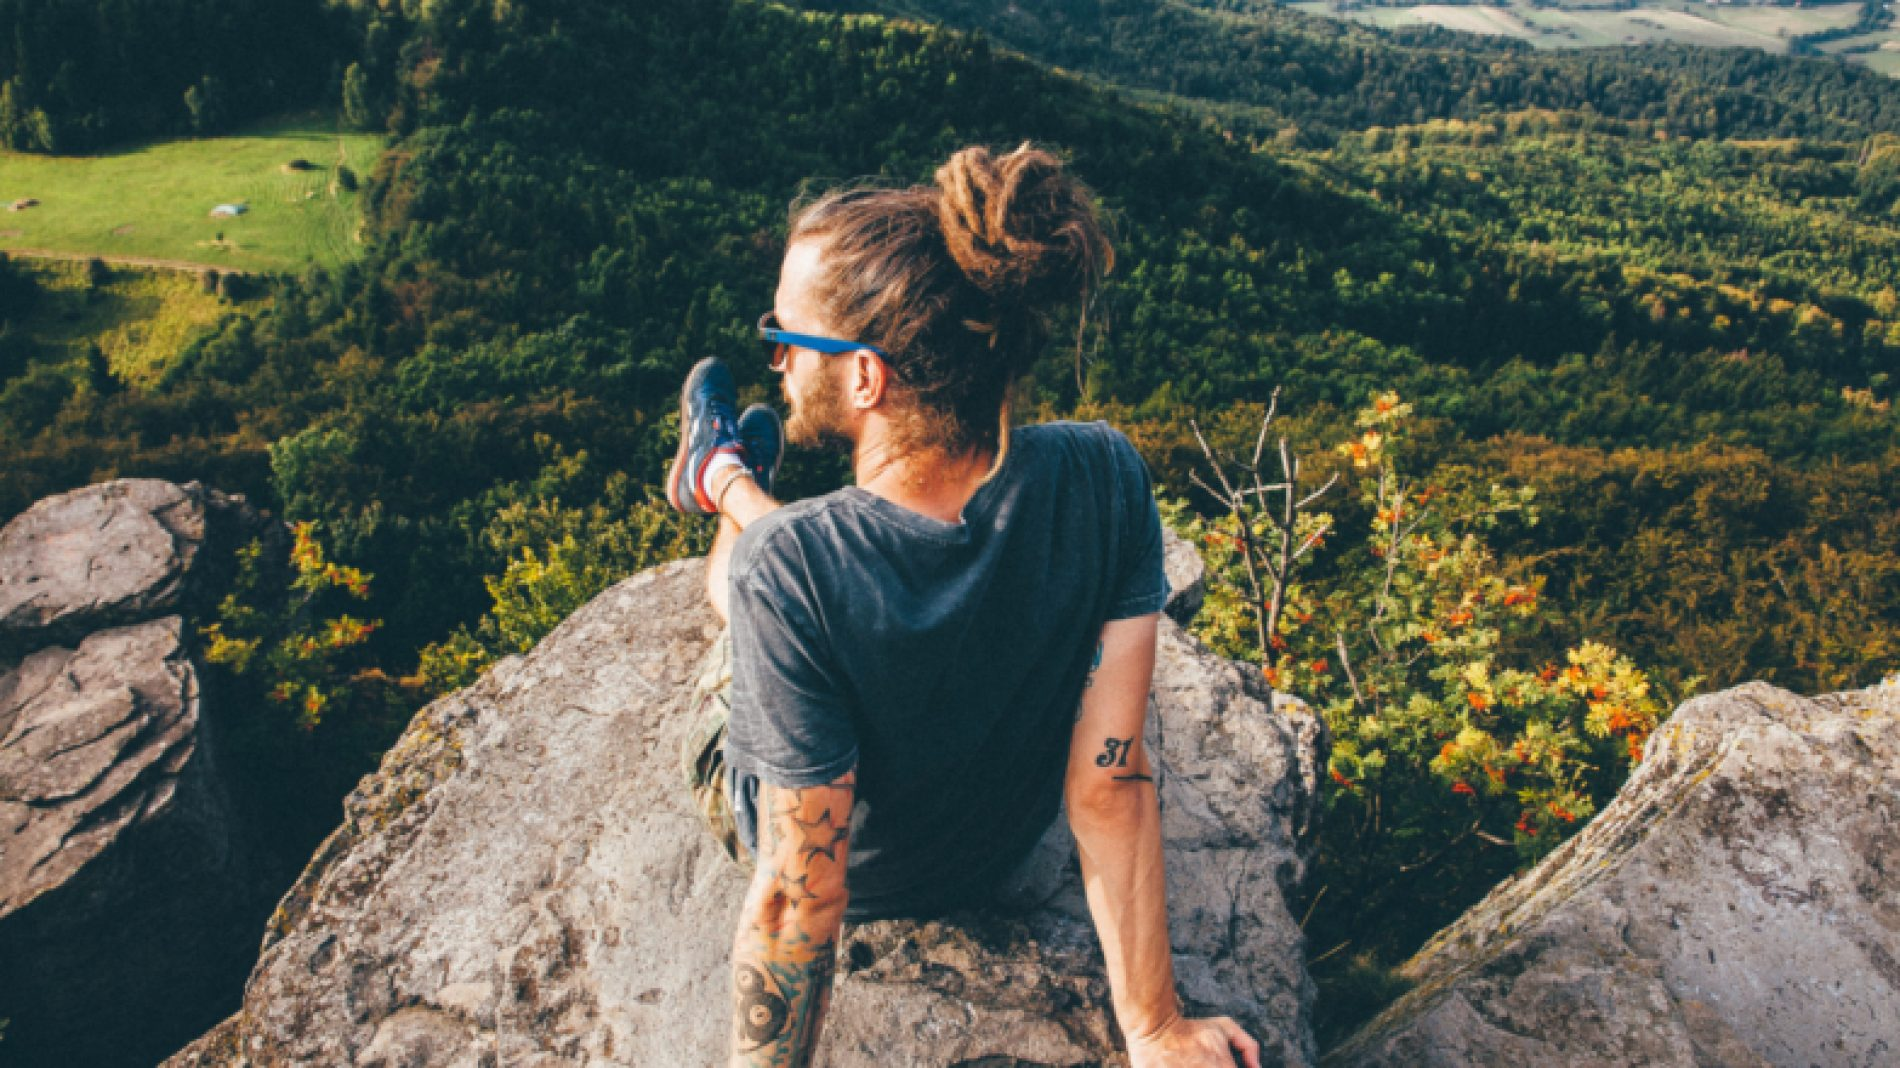 nature-forest-rock-sitting-landscape-young-man-man-tattoos_t20_7J7g26-YYAwrd